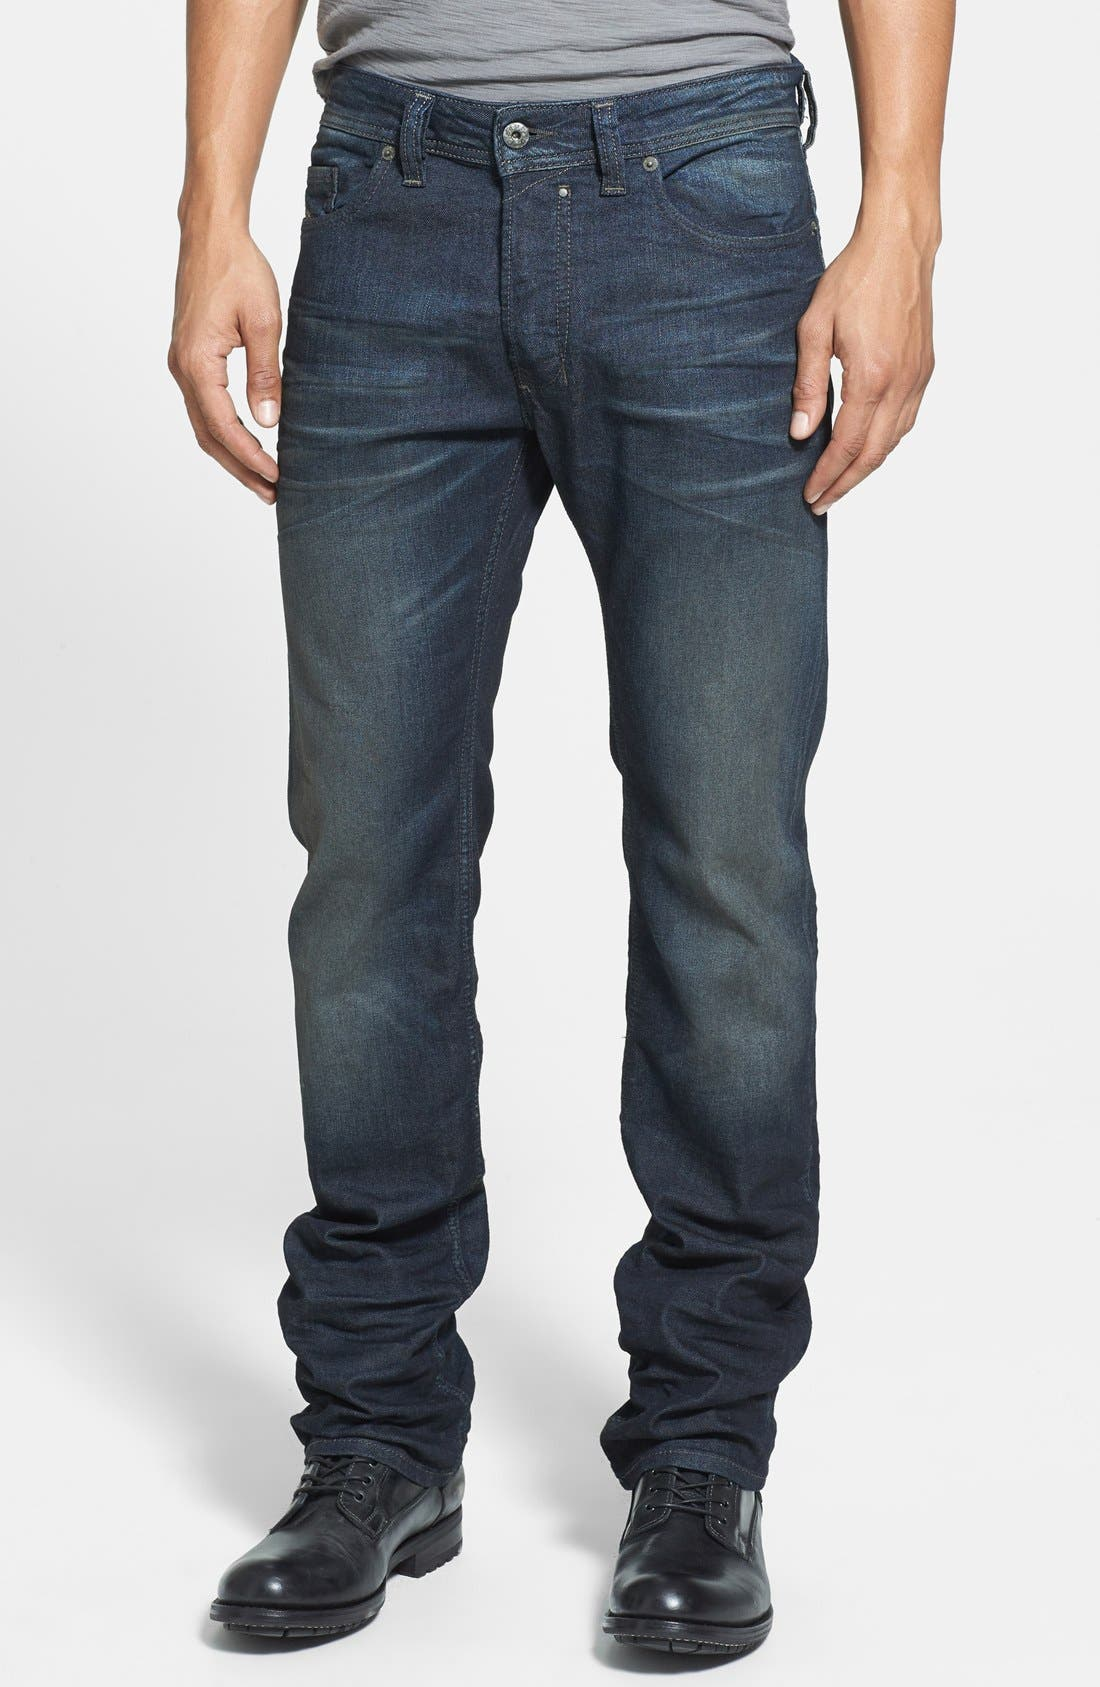 'Safado' Slim Fit Jeans,                             Main thumbnail 1, color,                             827K